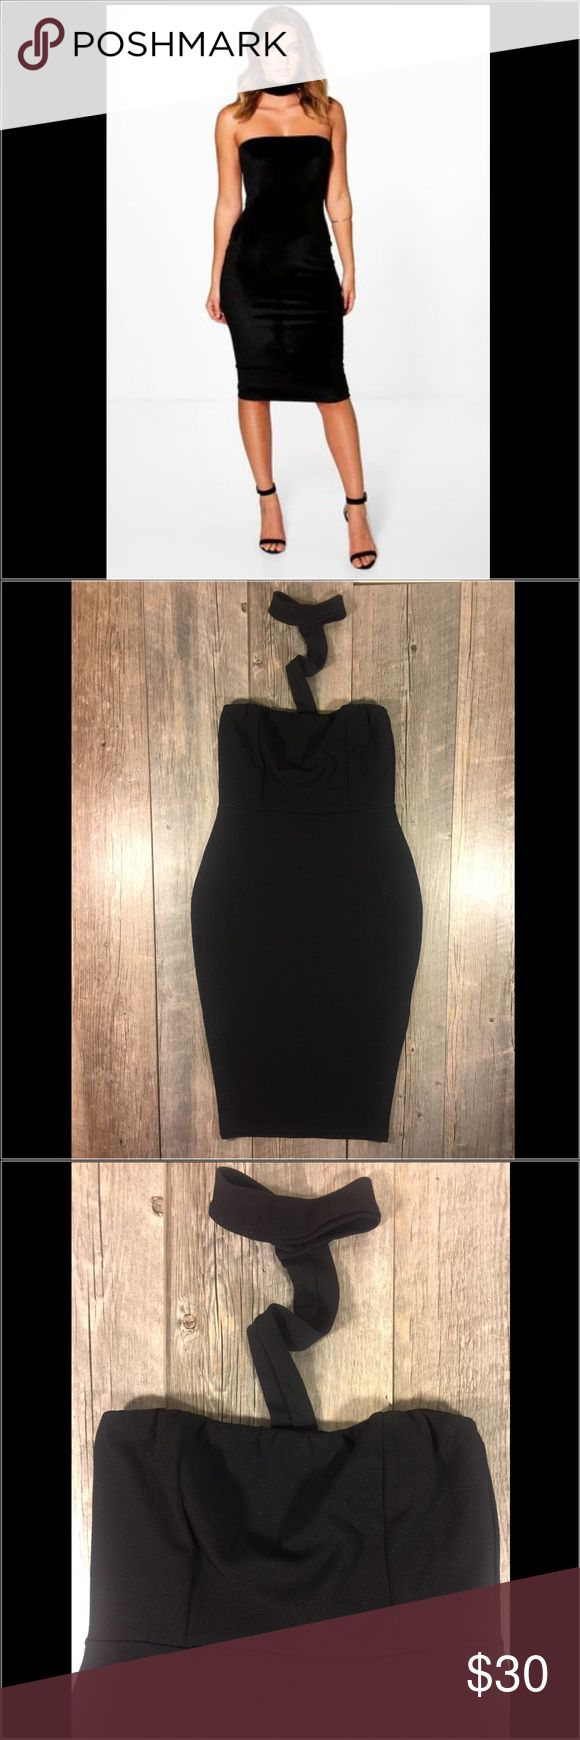 NWT Boohoo black choker strapless midi dress NWT Boohoo black choker strapless midi dress. Buttons behind neck. Elastic waistband at chest. 37 inches long from underarm to hem. Polyester elastane. Tag reads size US 10. #4 Boohoo Dresses Midi